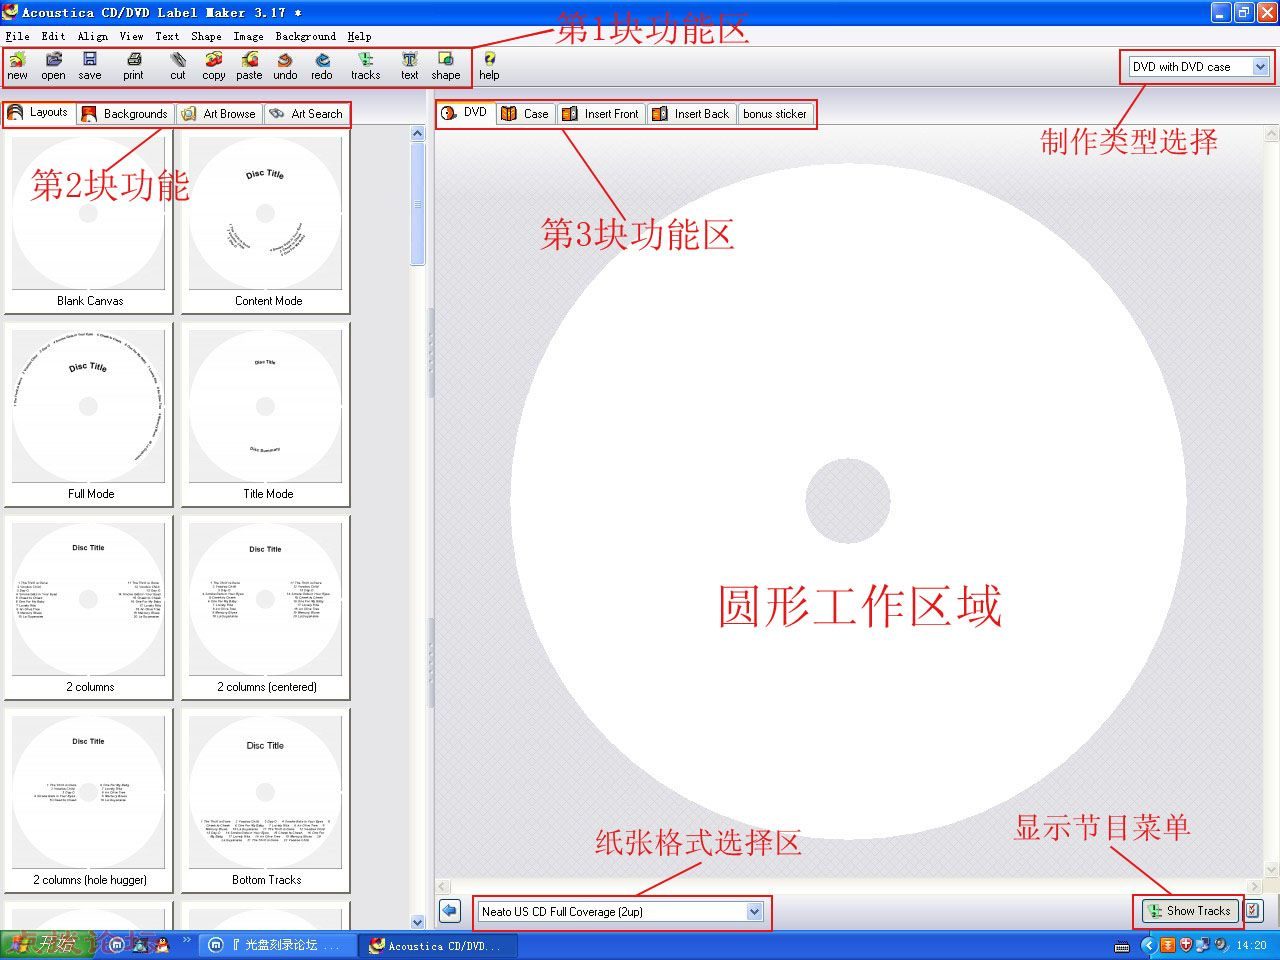 光盘盘面设计软件Acoustica CD/DVD LABEL MAKER 英文原版+汉化文件,我学会声会影